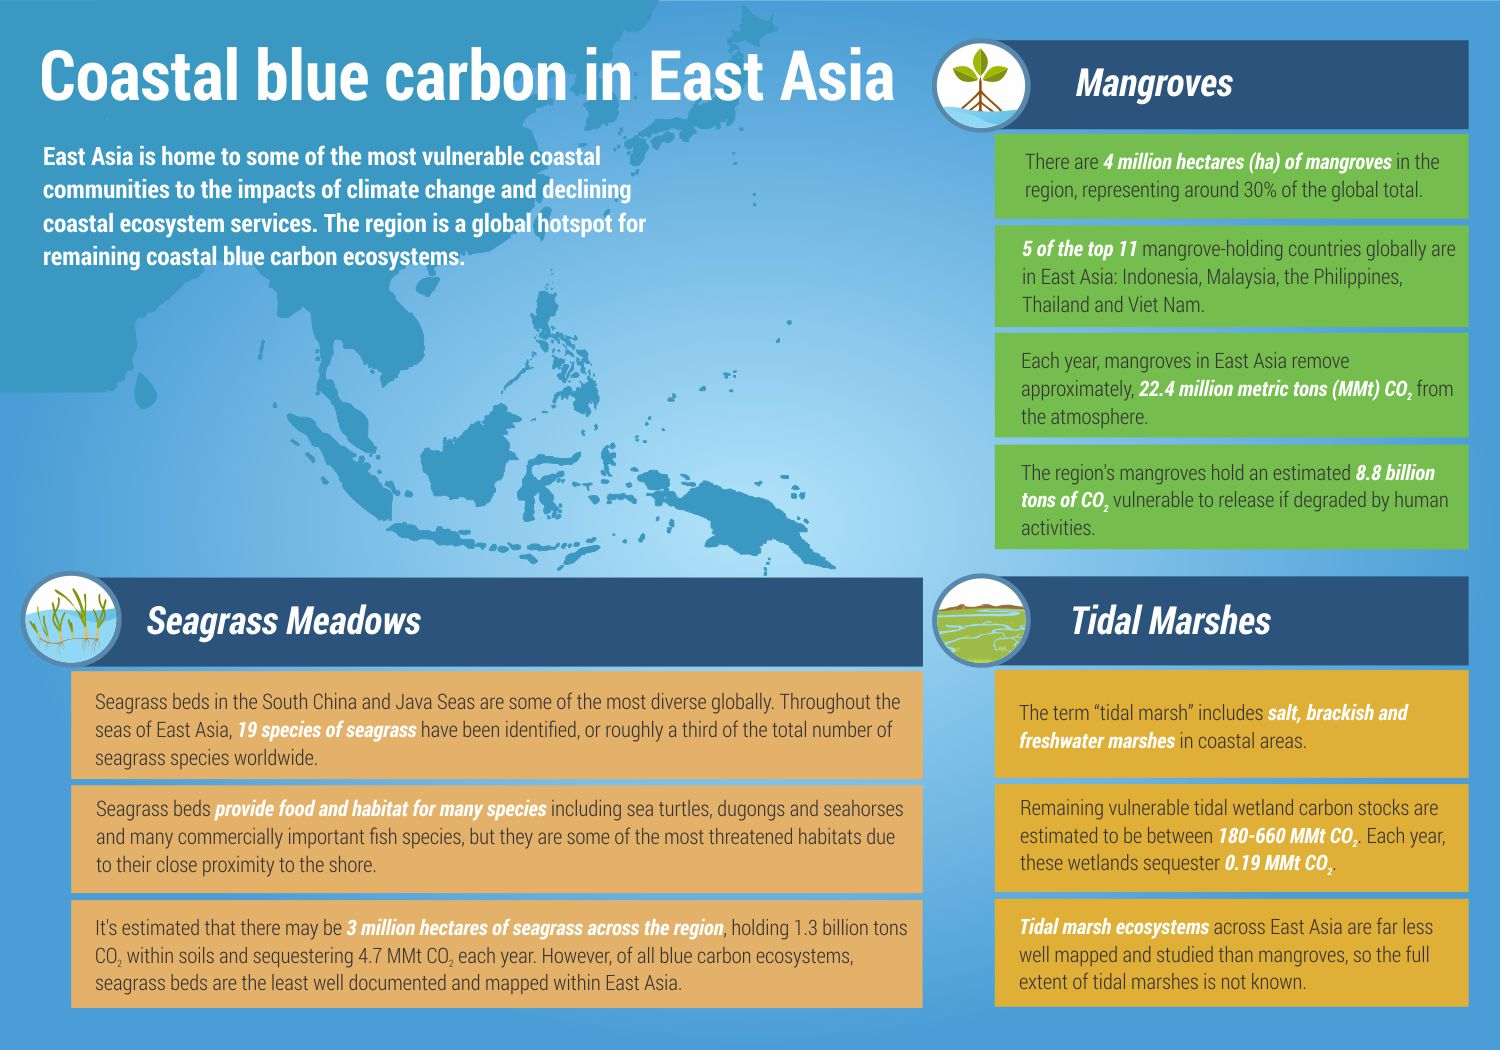 Let's talk about blue carbon solutions